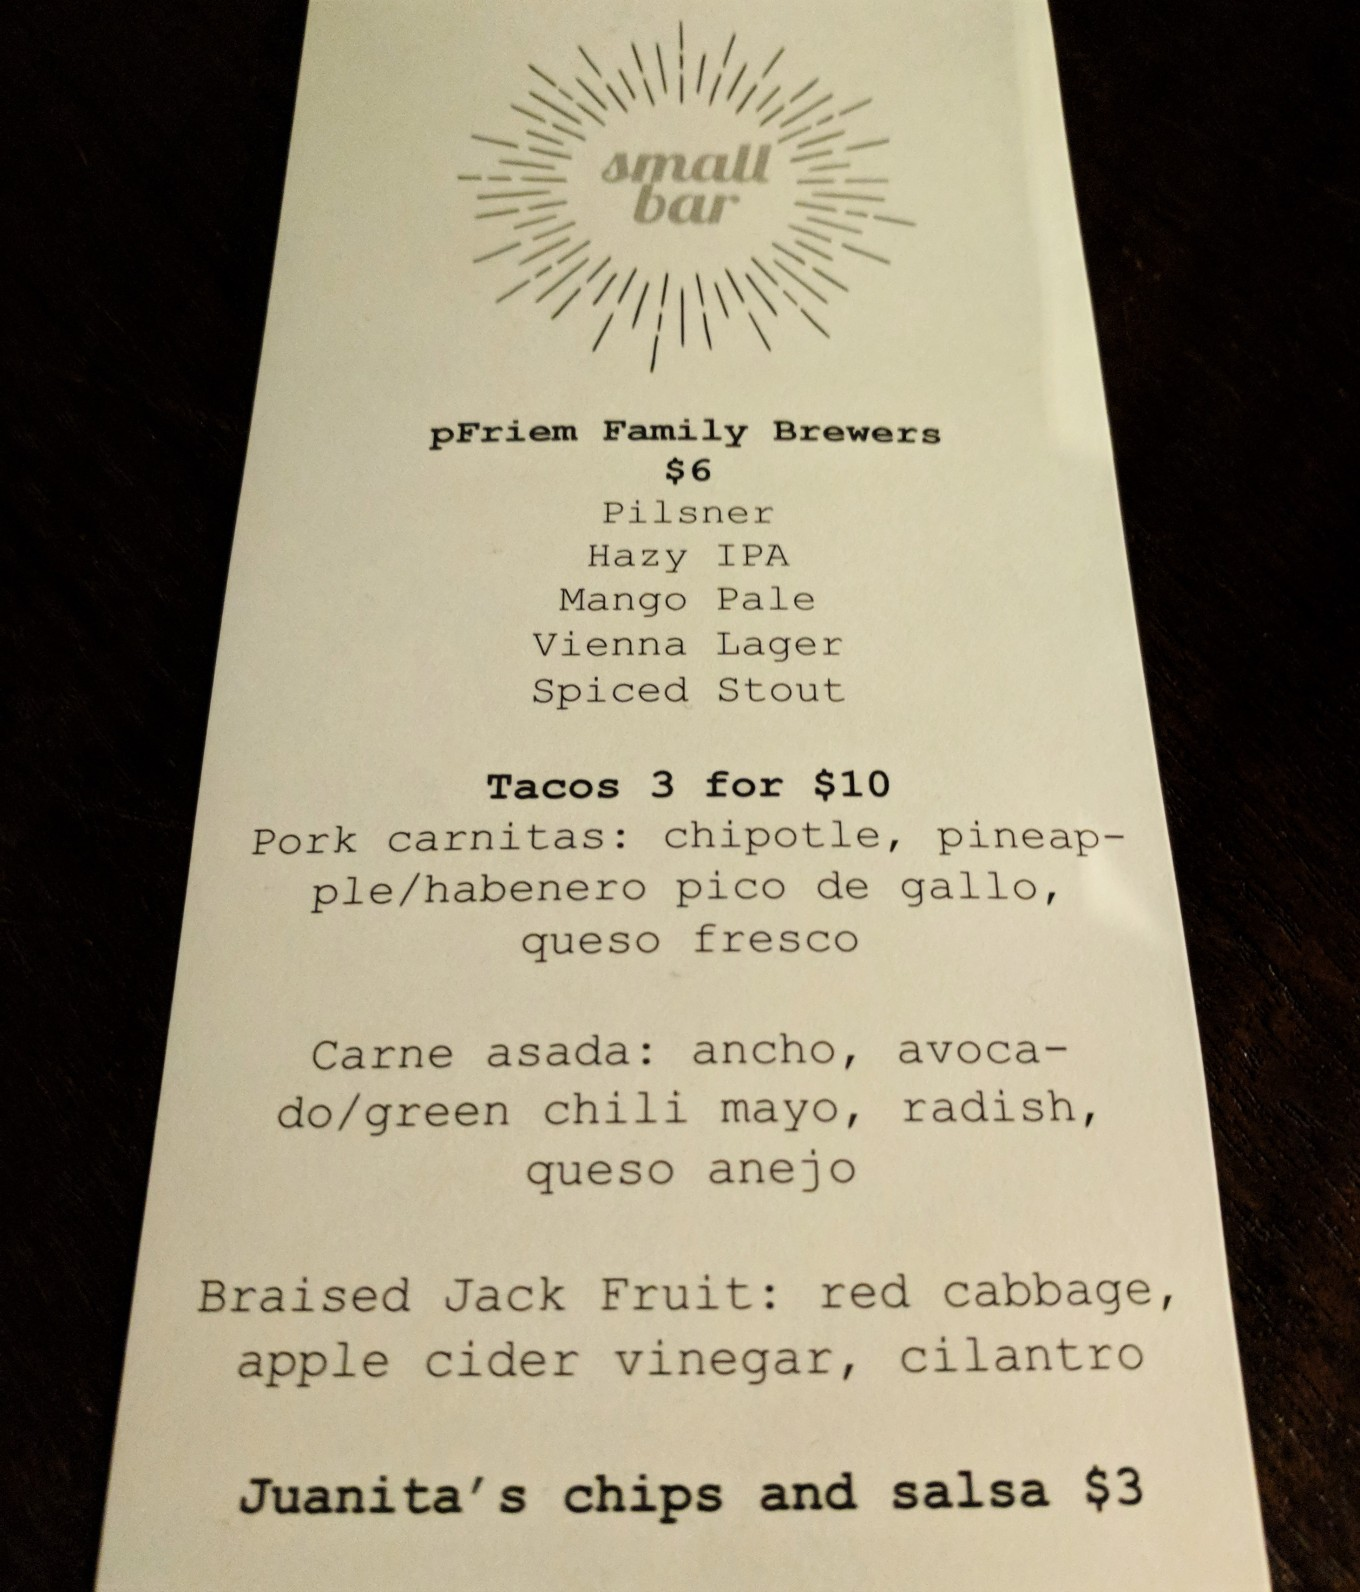 Small Bar Pop-Up PDX Menu